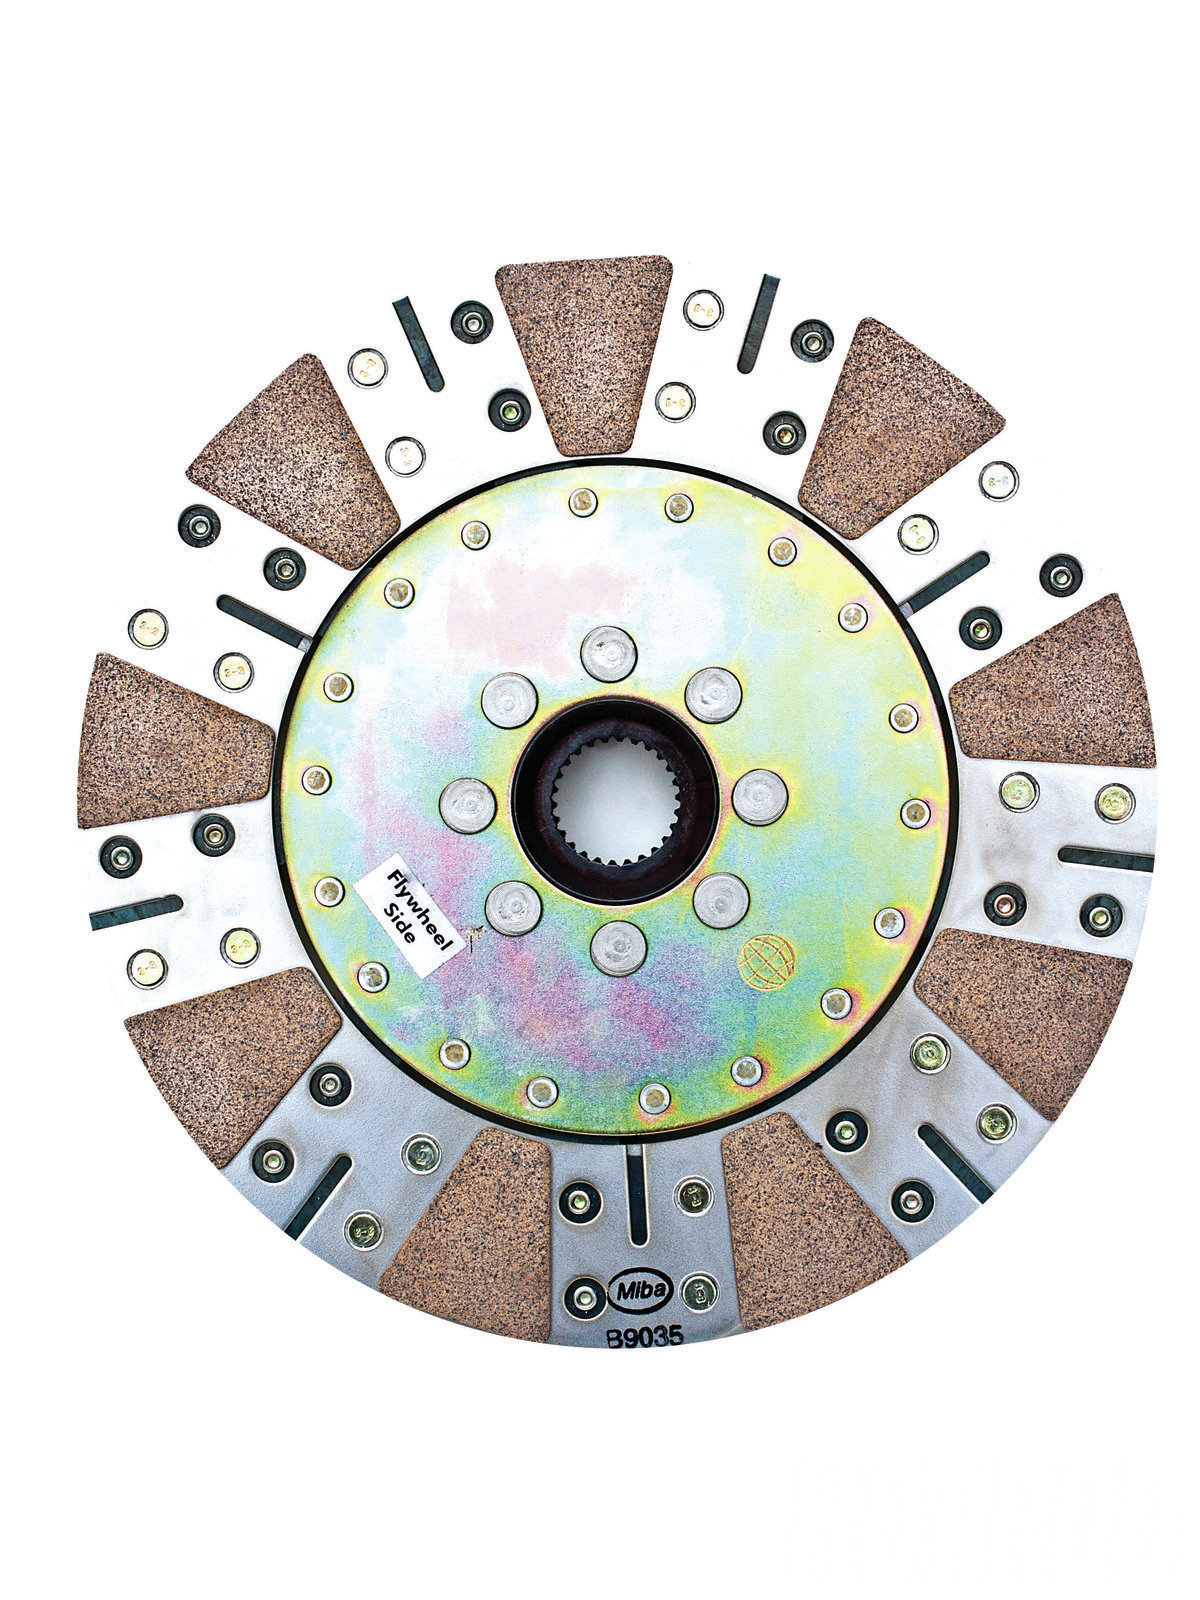 This is one of the clutch discs from McLeod's replacement '10-'11 Camaro RXT dual-disc clutch and pressure plate kit. The entire assembly, including flywheel, can support 1,000 hp.